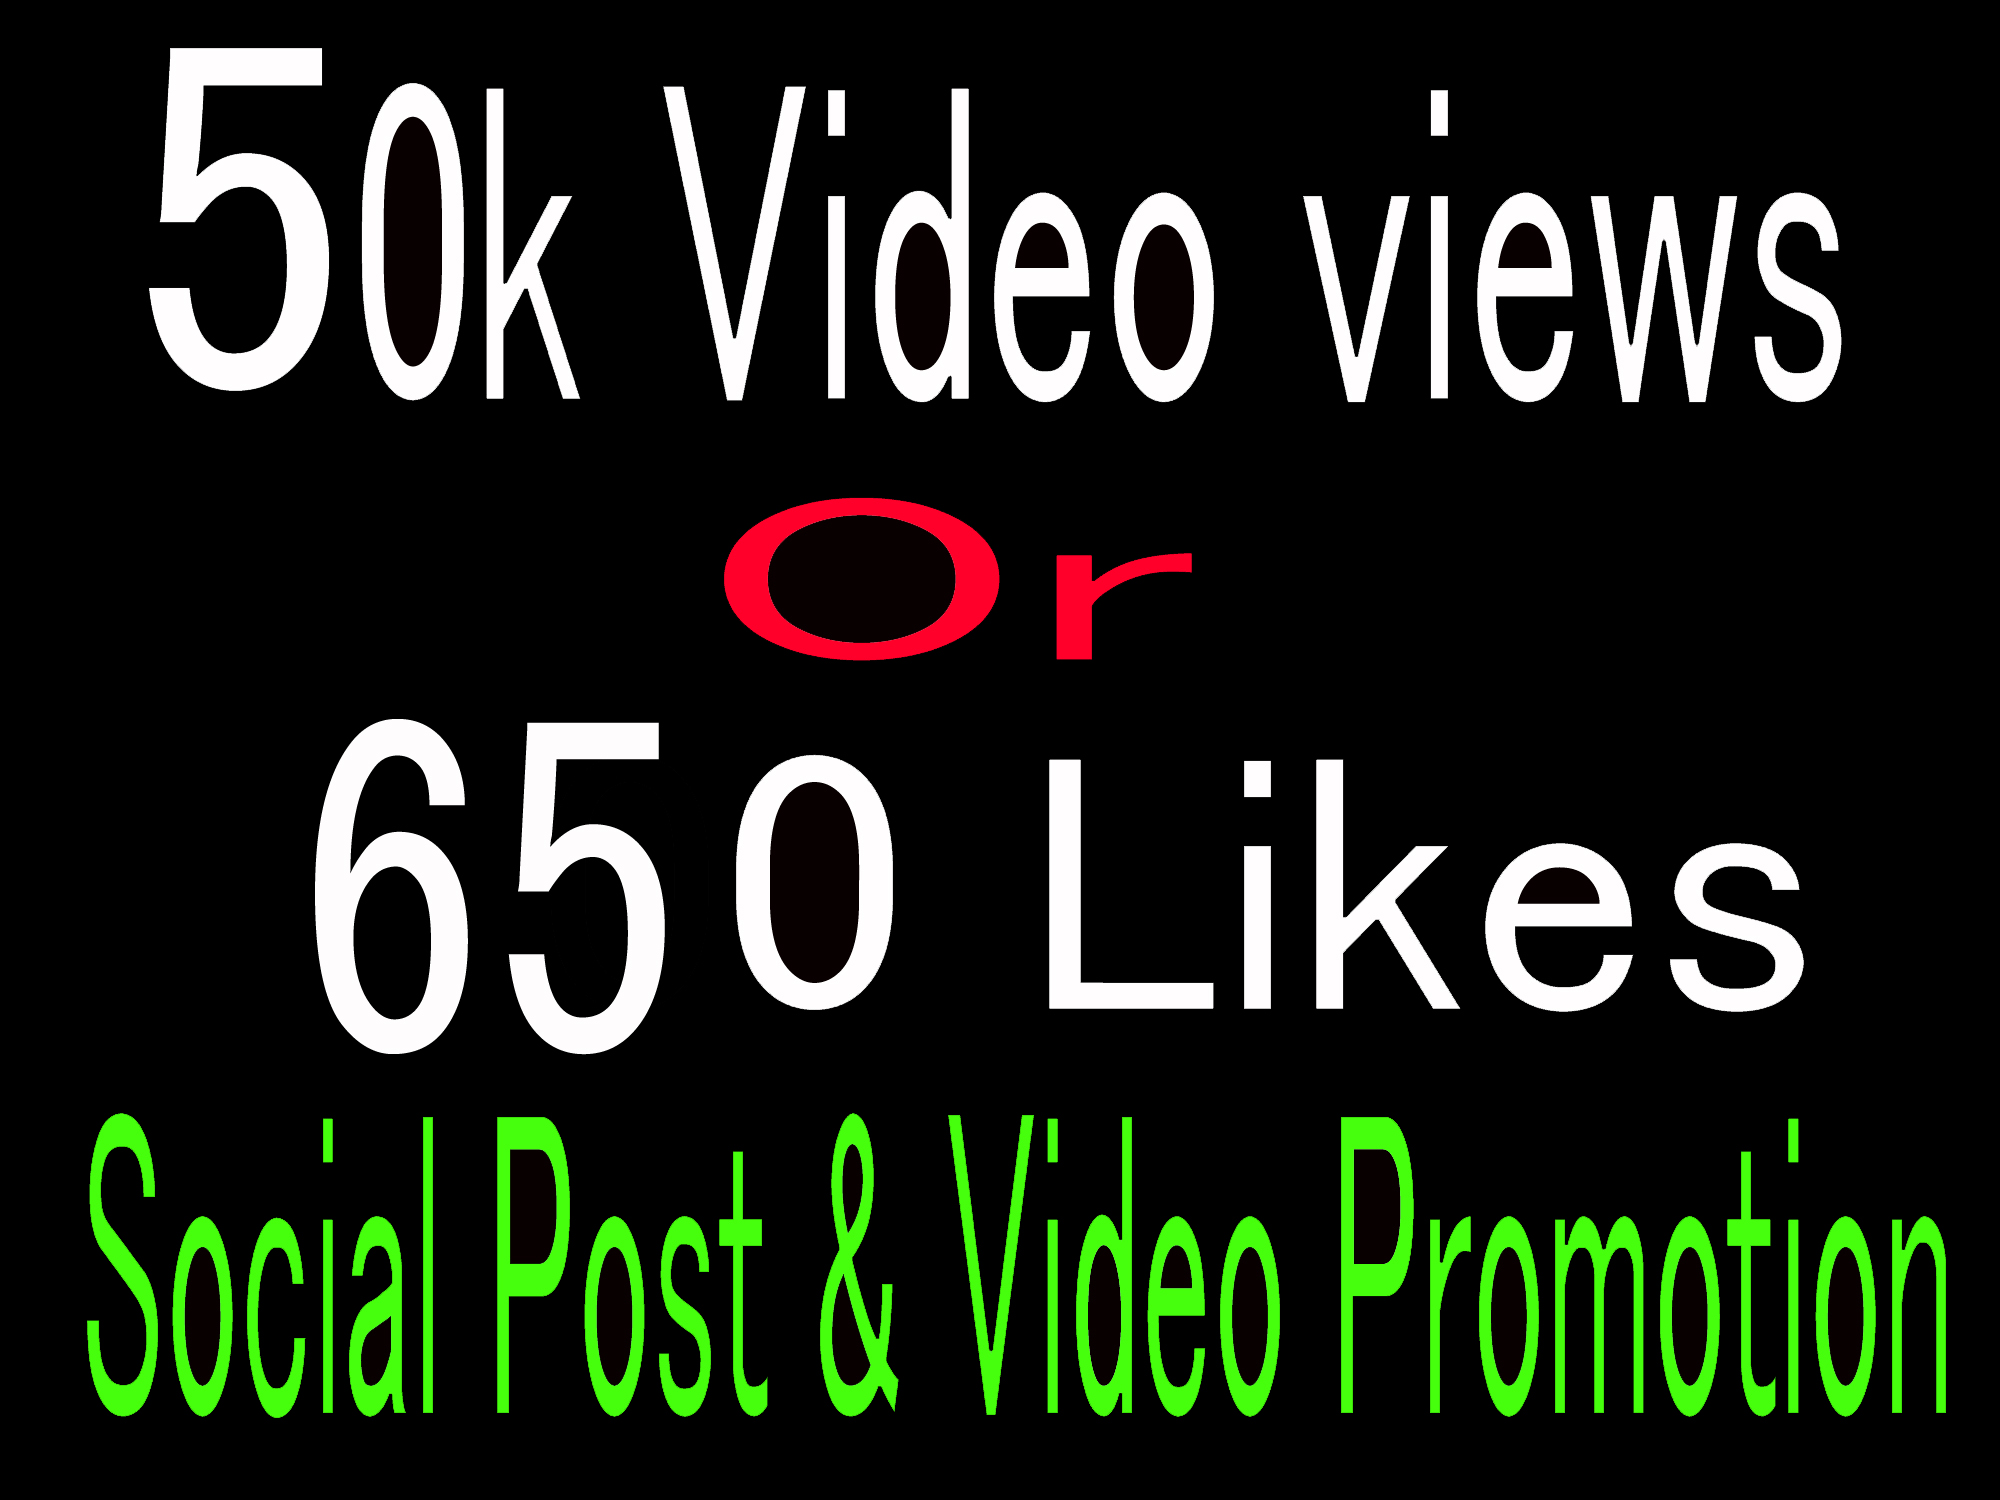 Instantly High Quality 50k video views 650+ Likes promotion, Social media Marketing